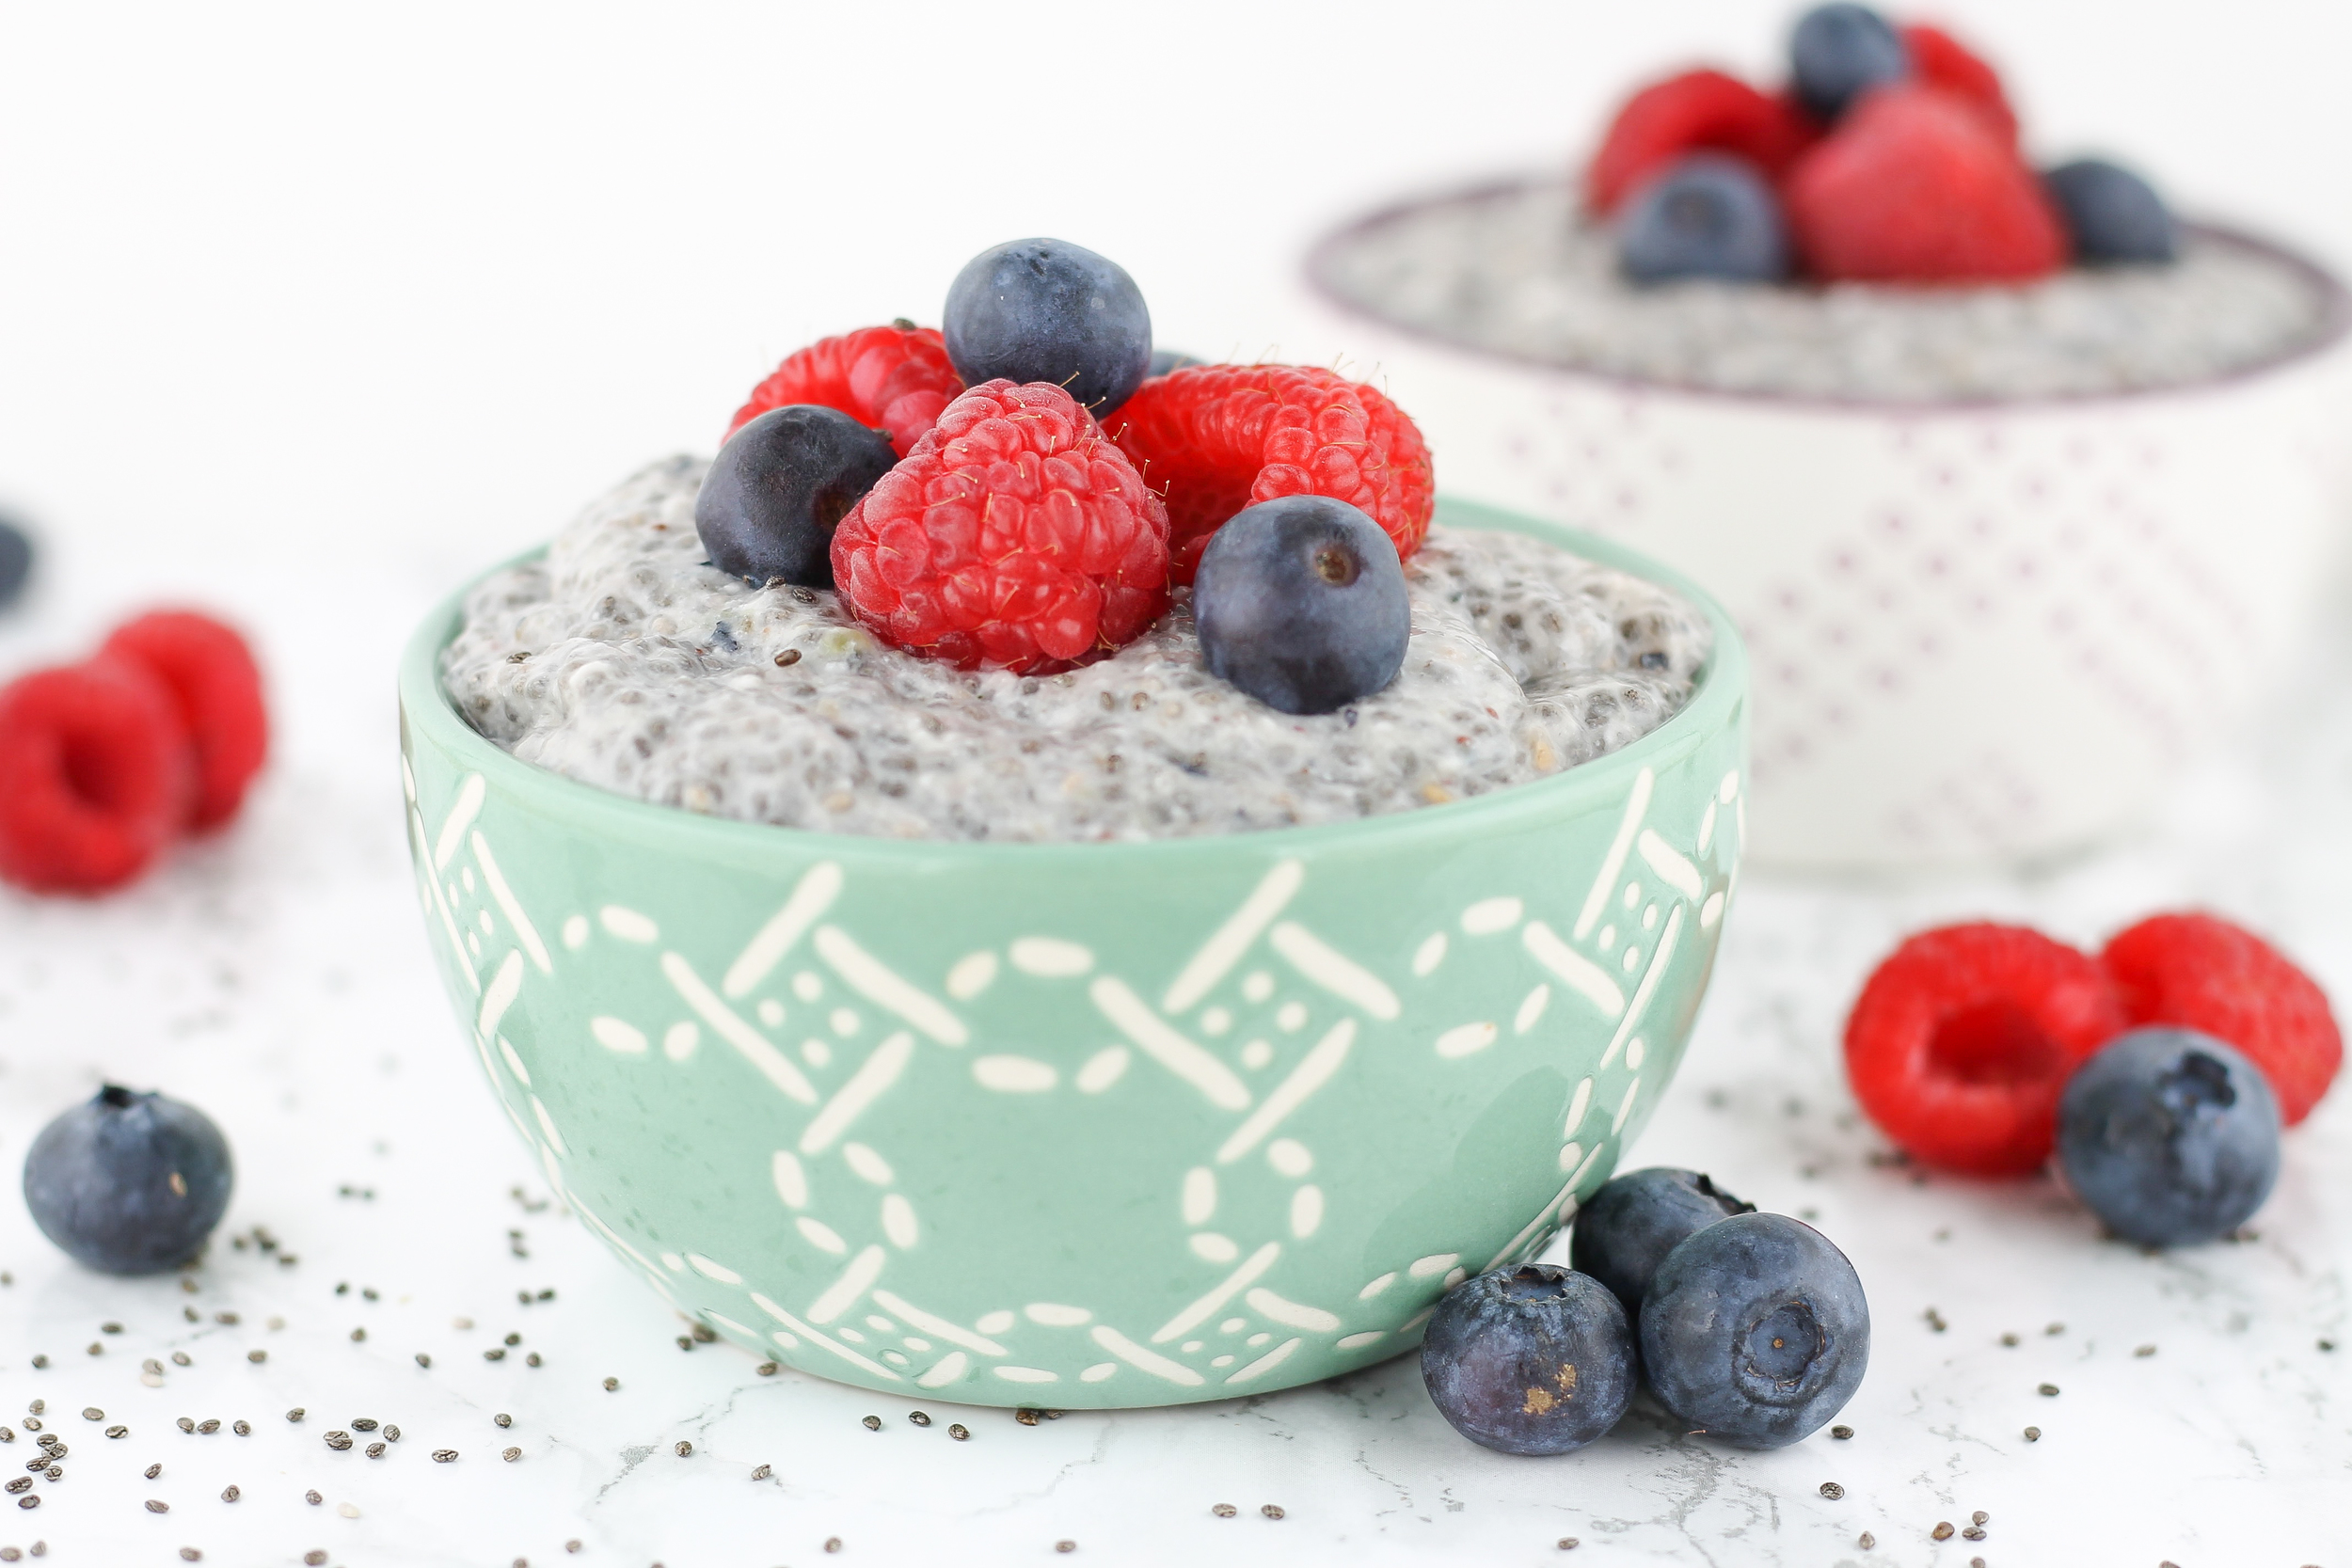 Fresh Berries, Berries and cream chia seed pudding, paleo desserts, paleo recipes, quick, easy,